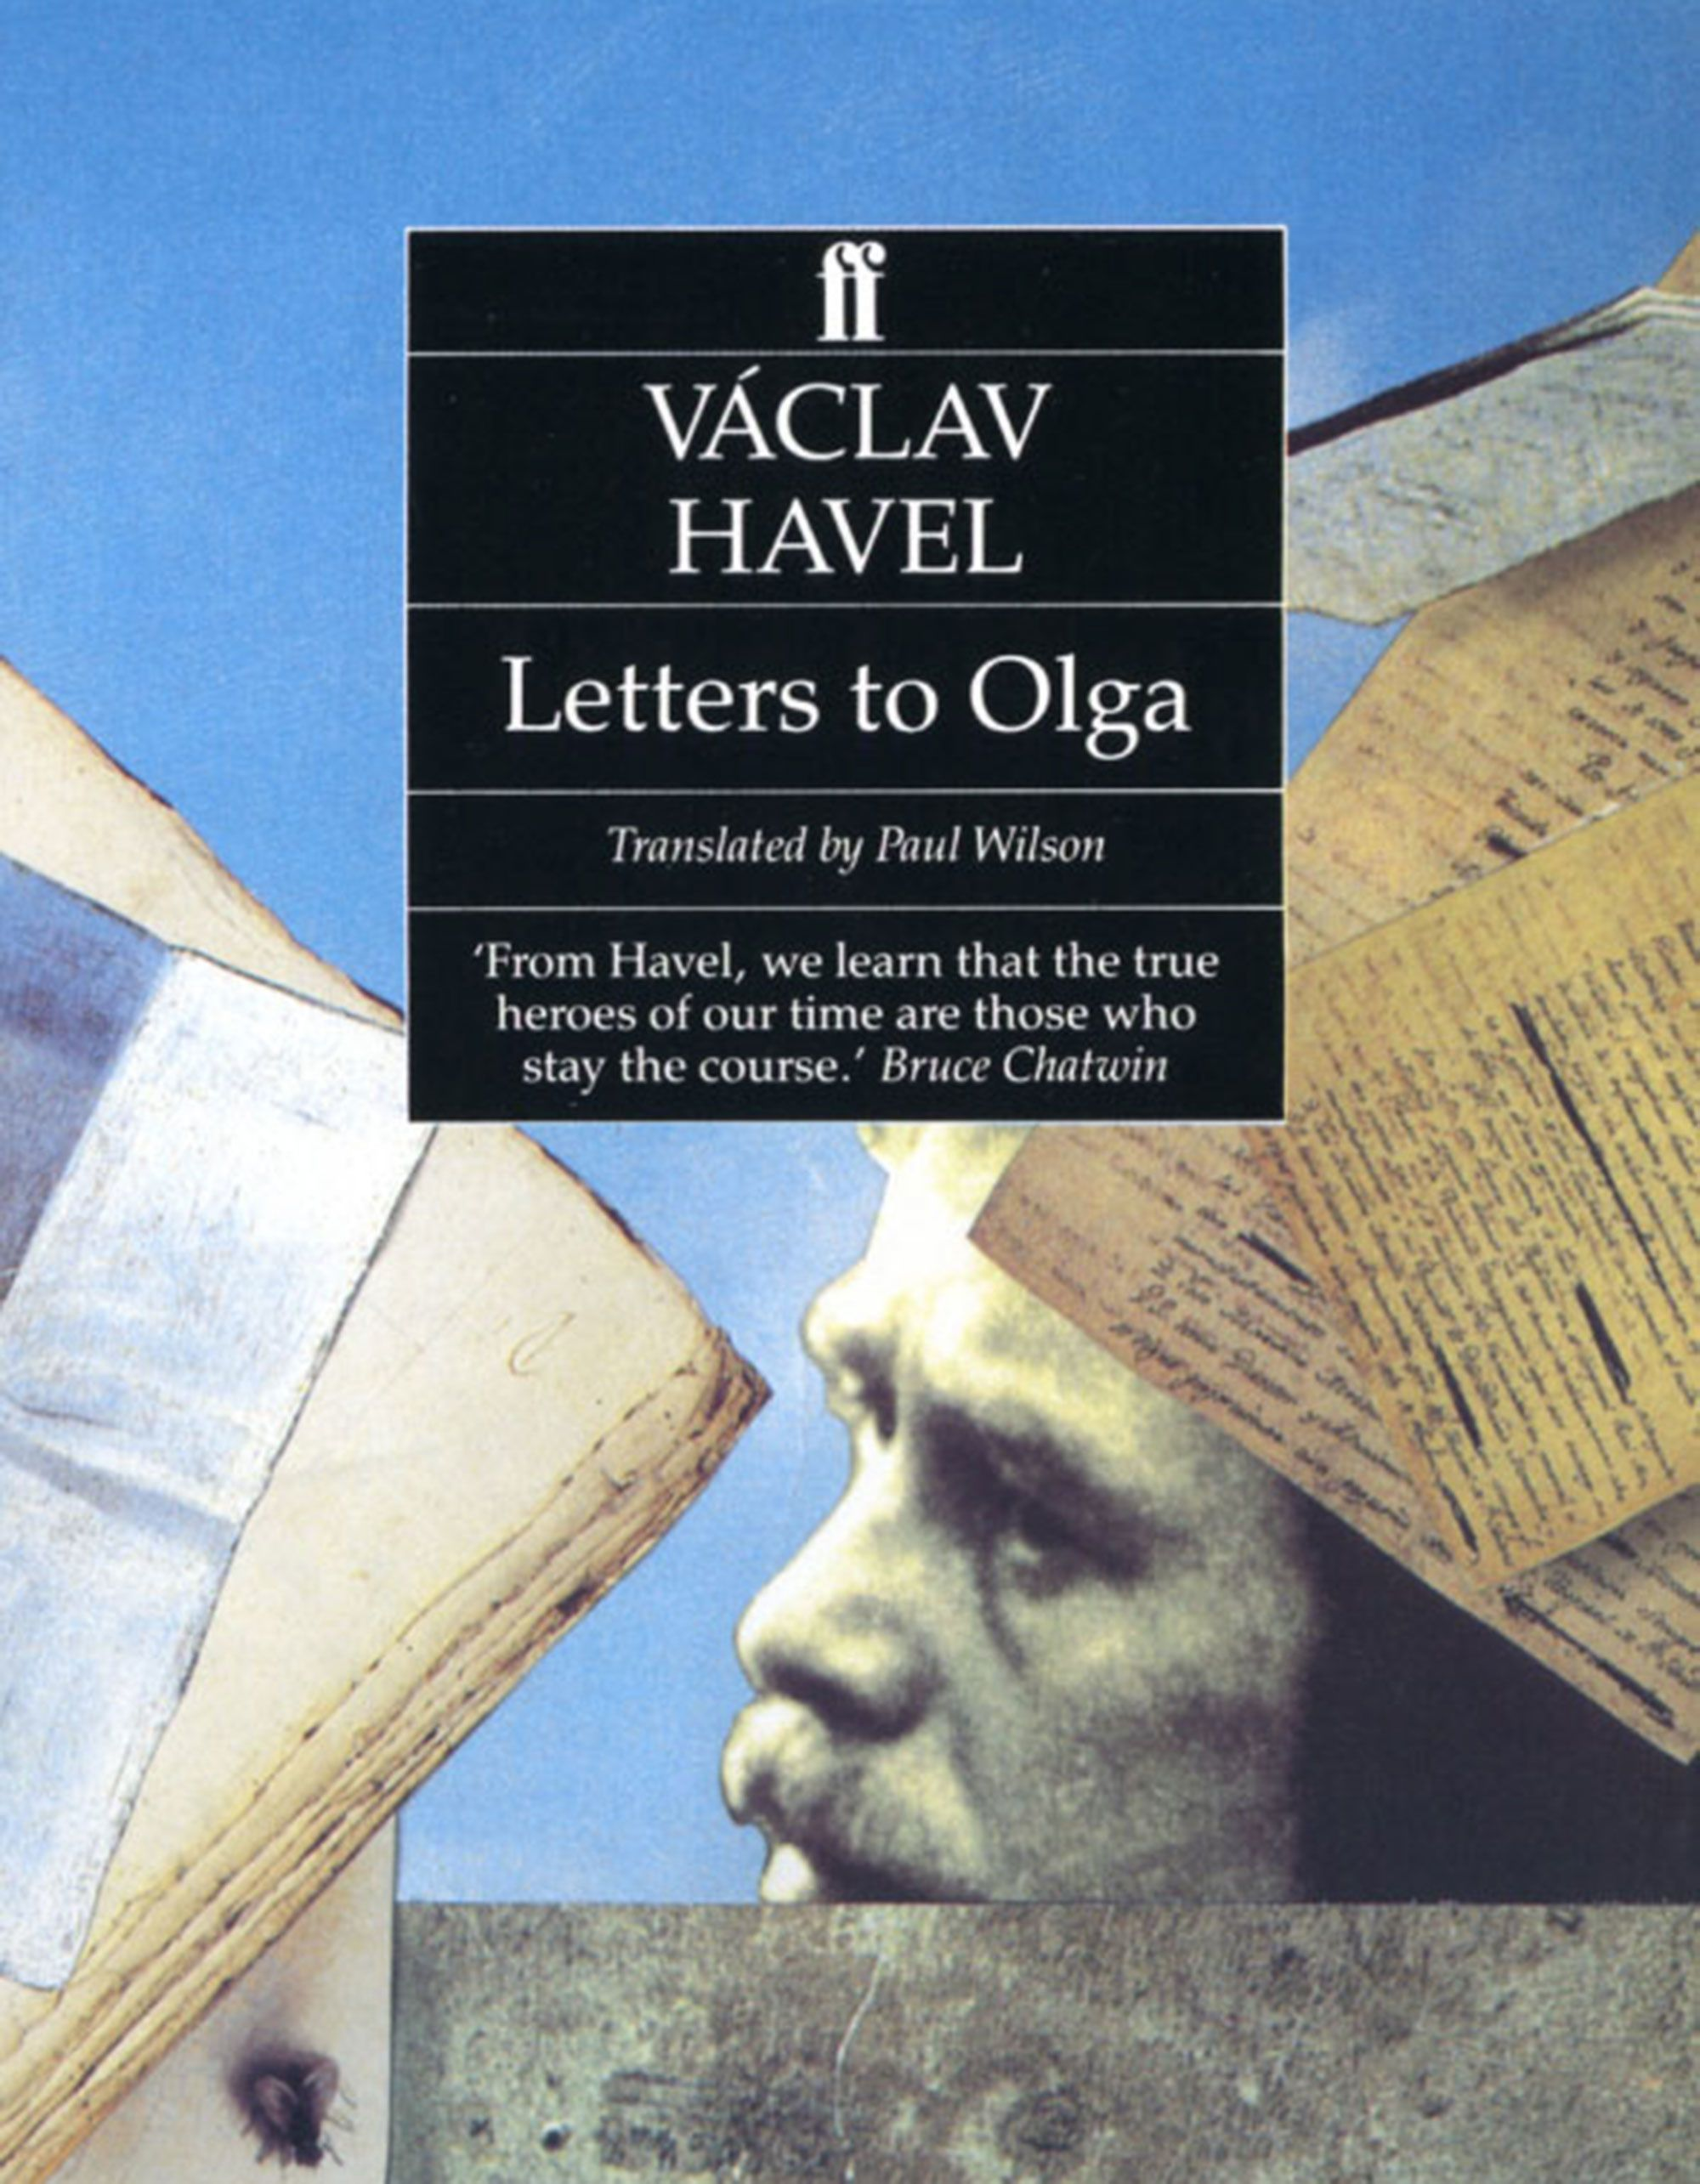 The cover of Vaclav Havel book Letters to Olga